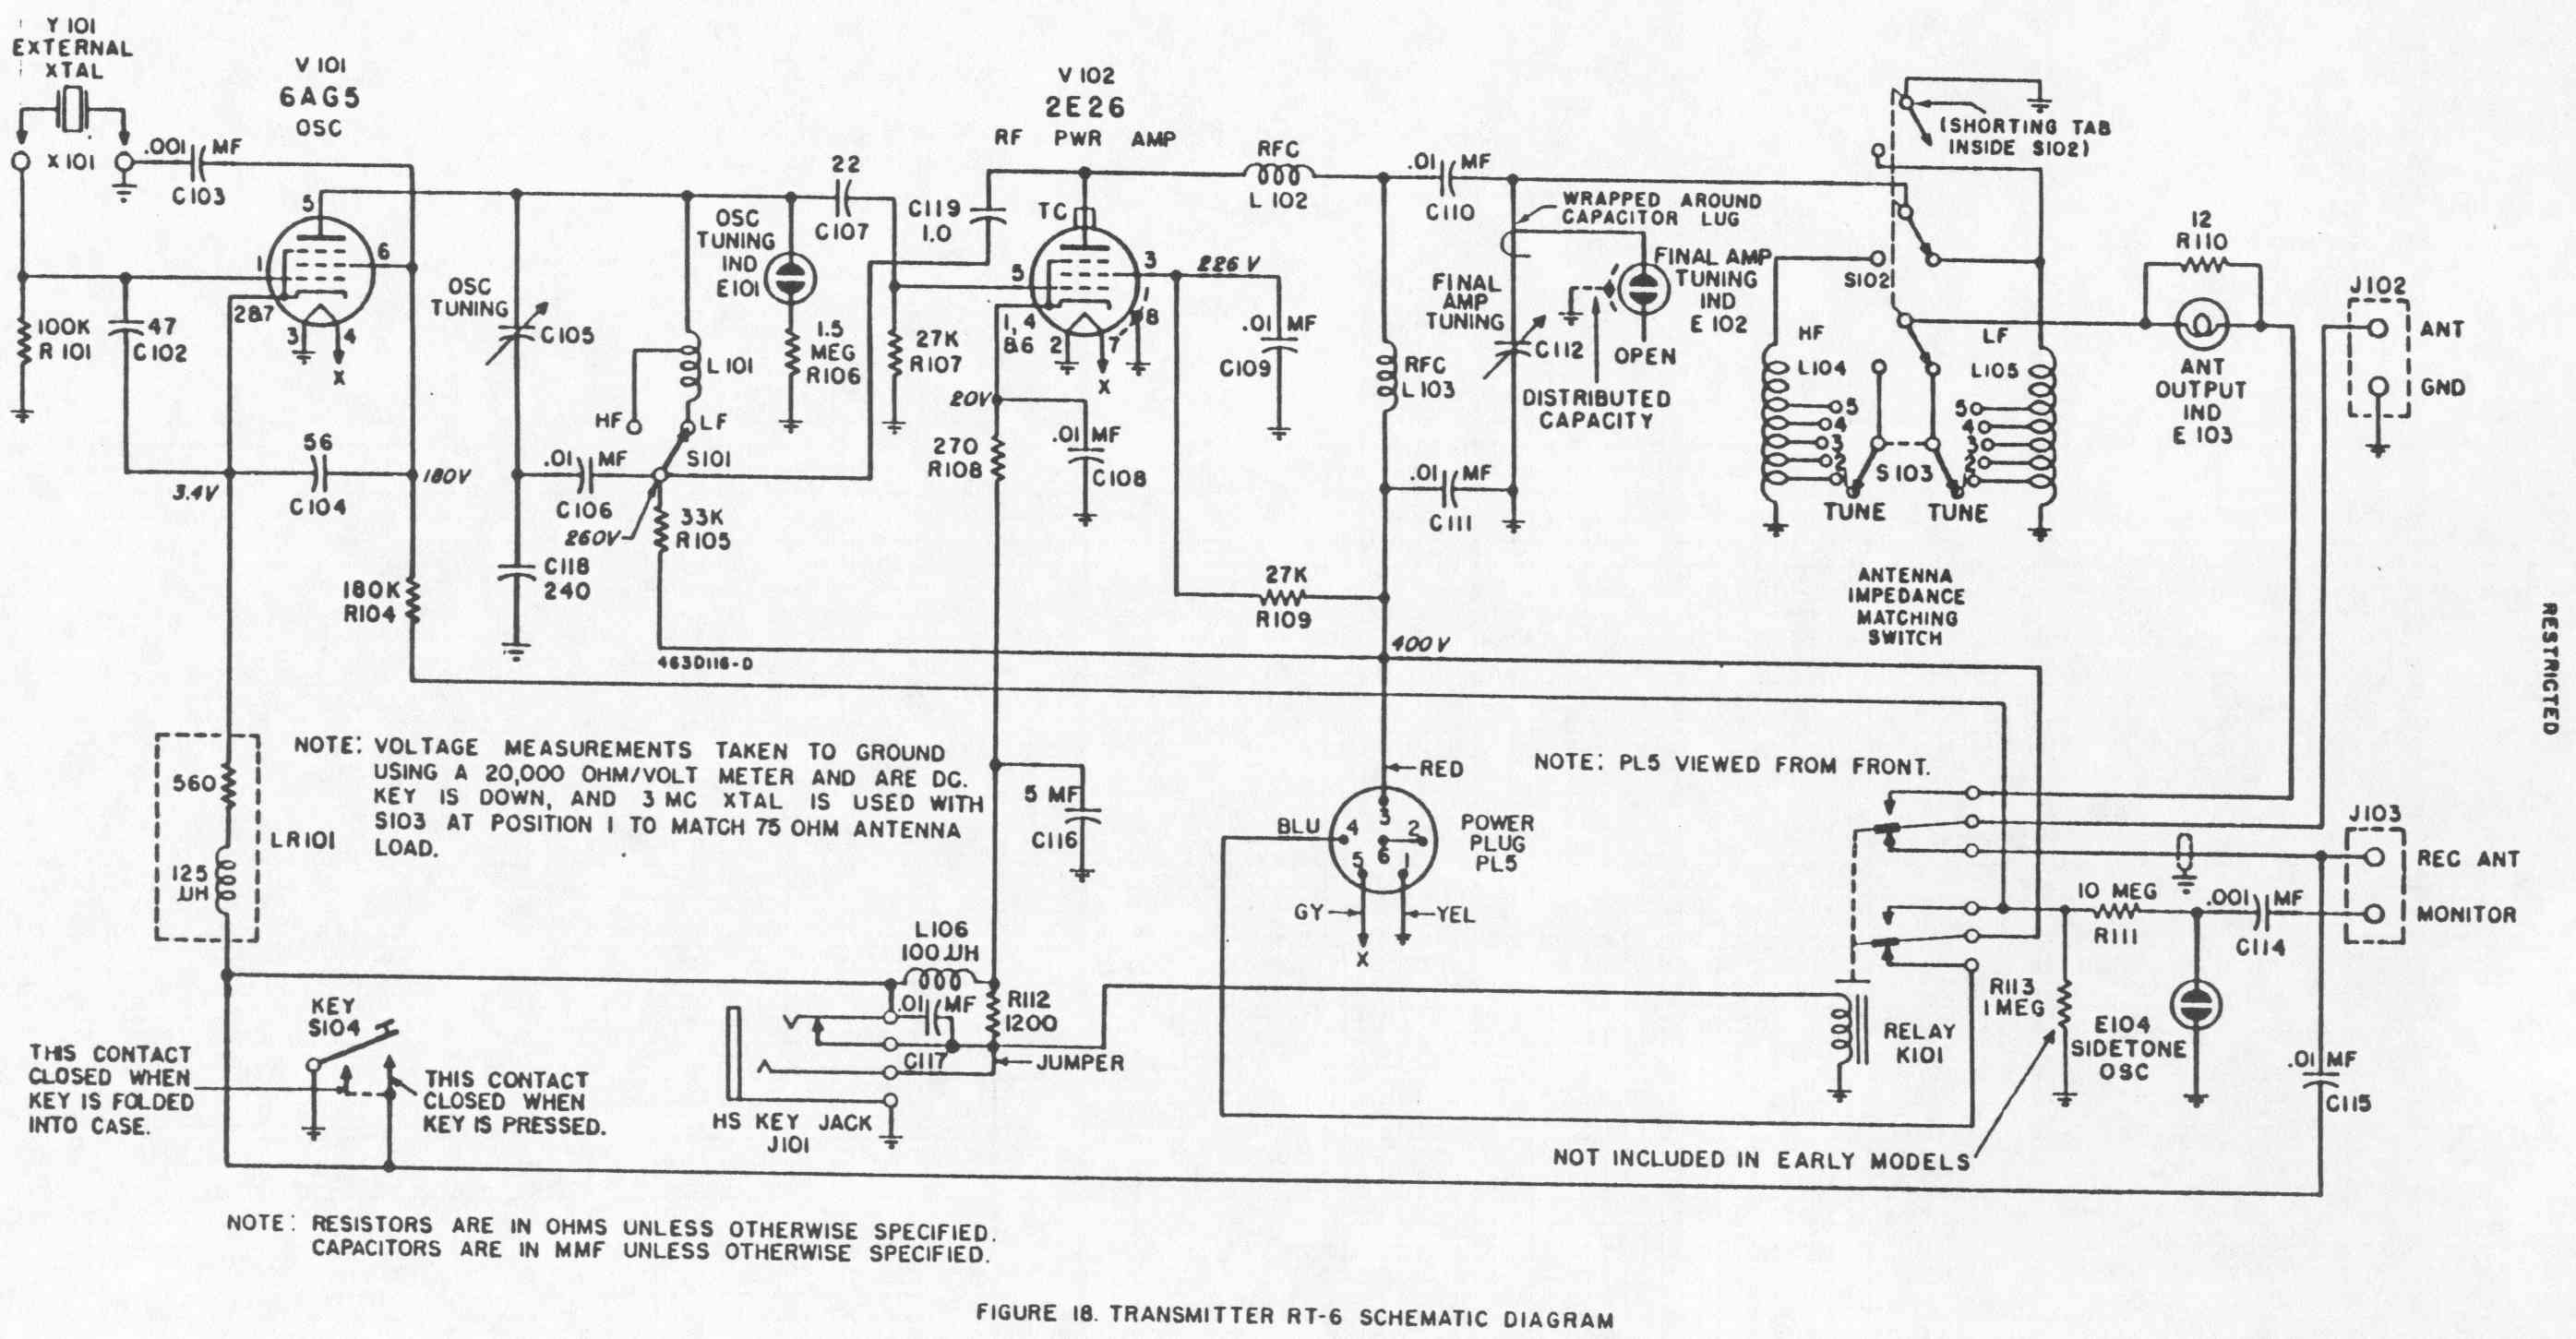 Astatic Microphone Schematic Explore Wiring Diagram On The Net D 104 Mic Images Gallery D104